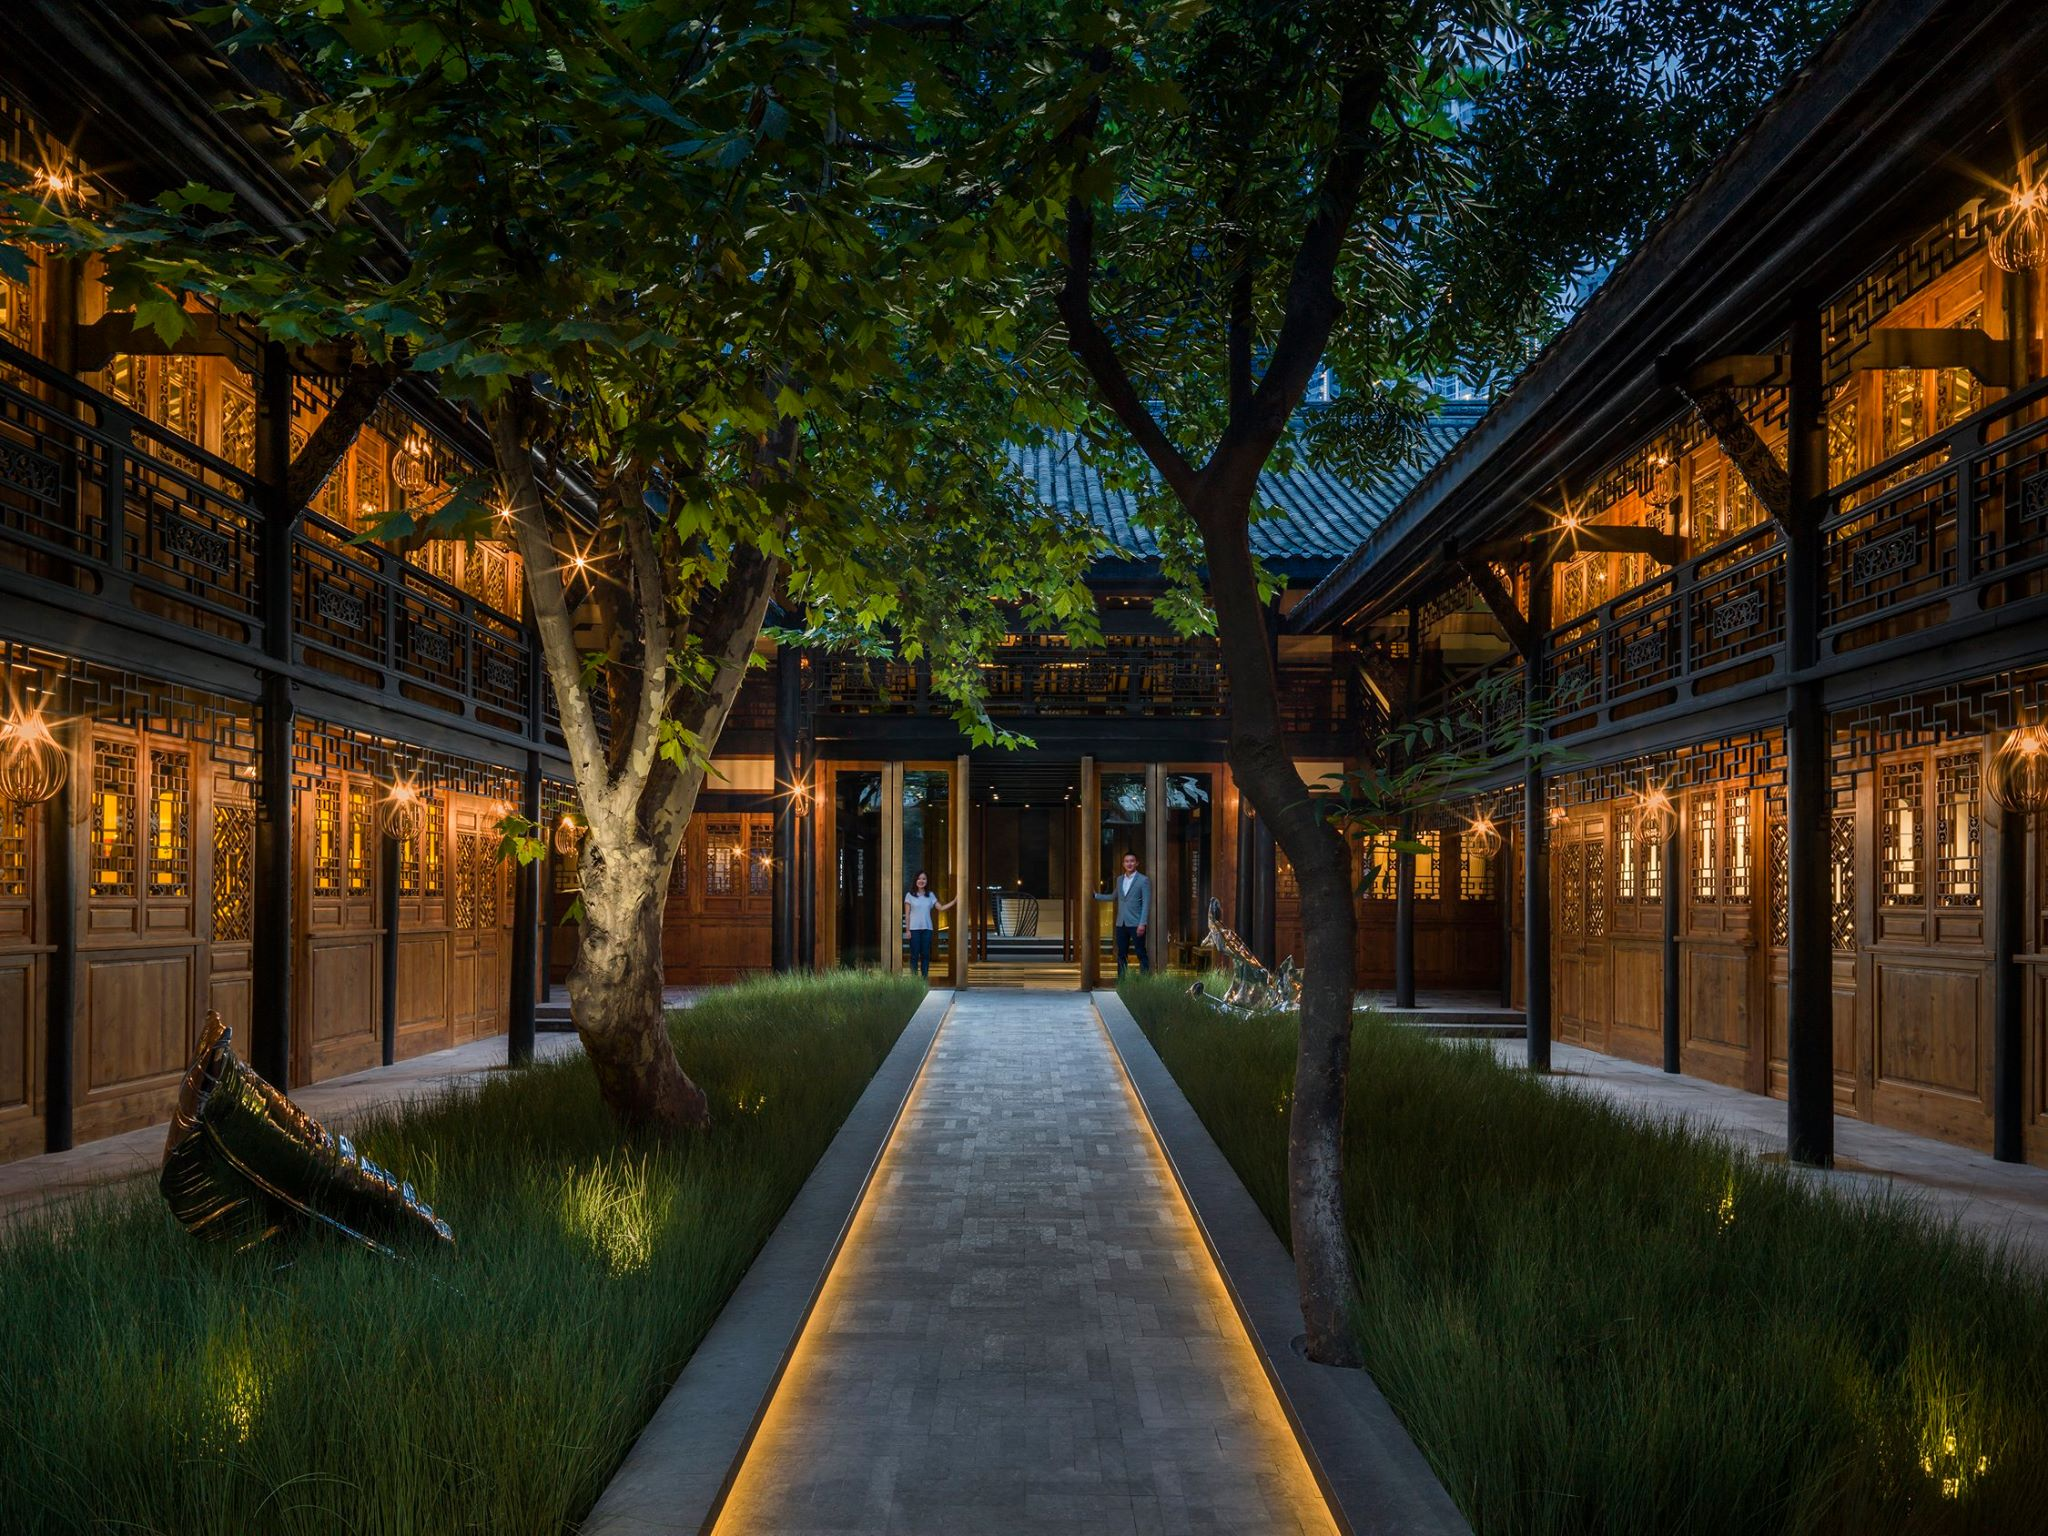 The Temple House Hotel Chengdu Swire Hotels